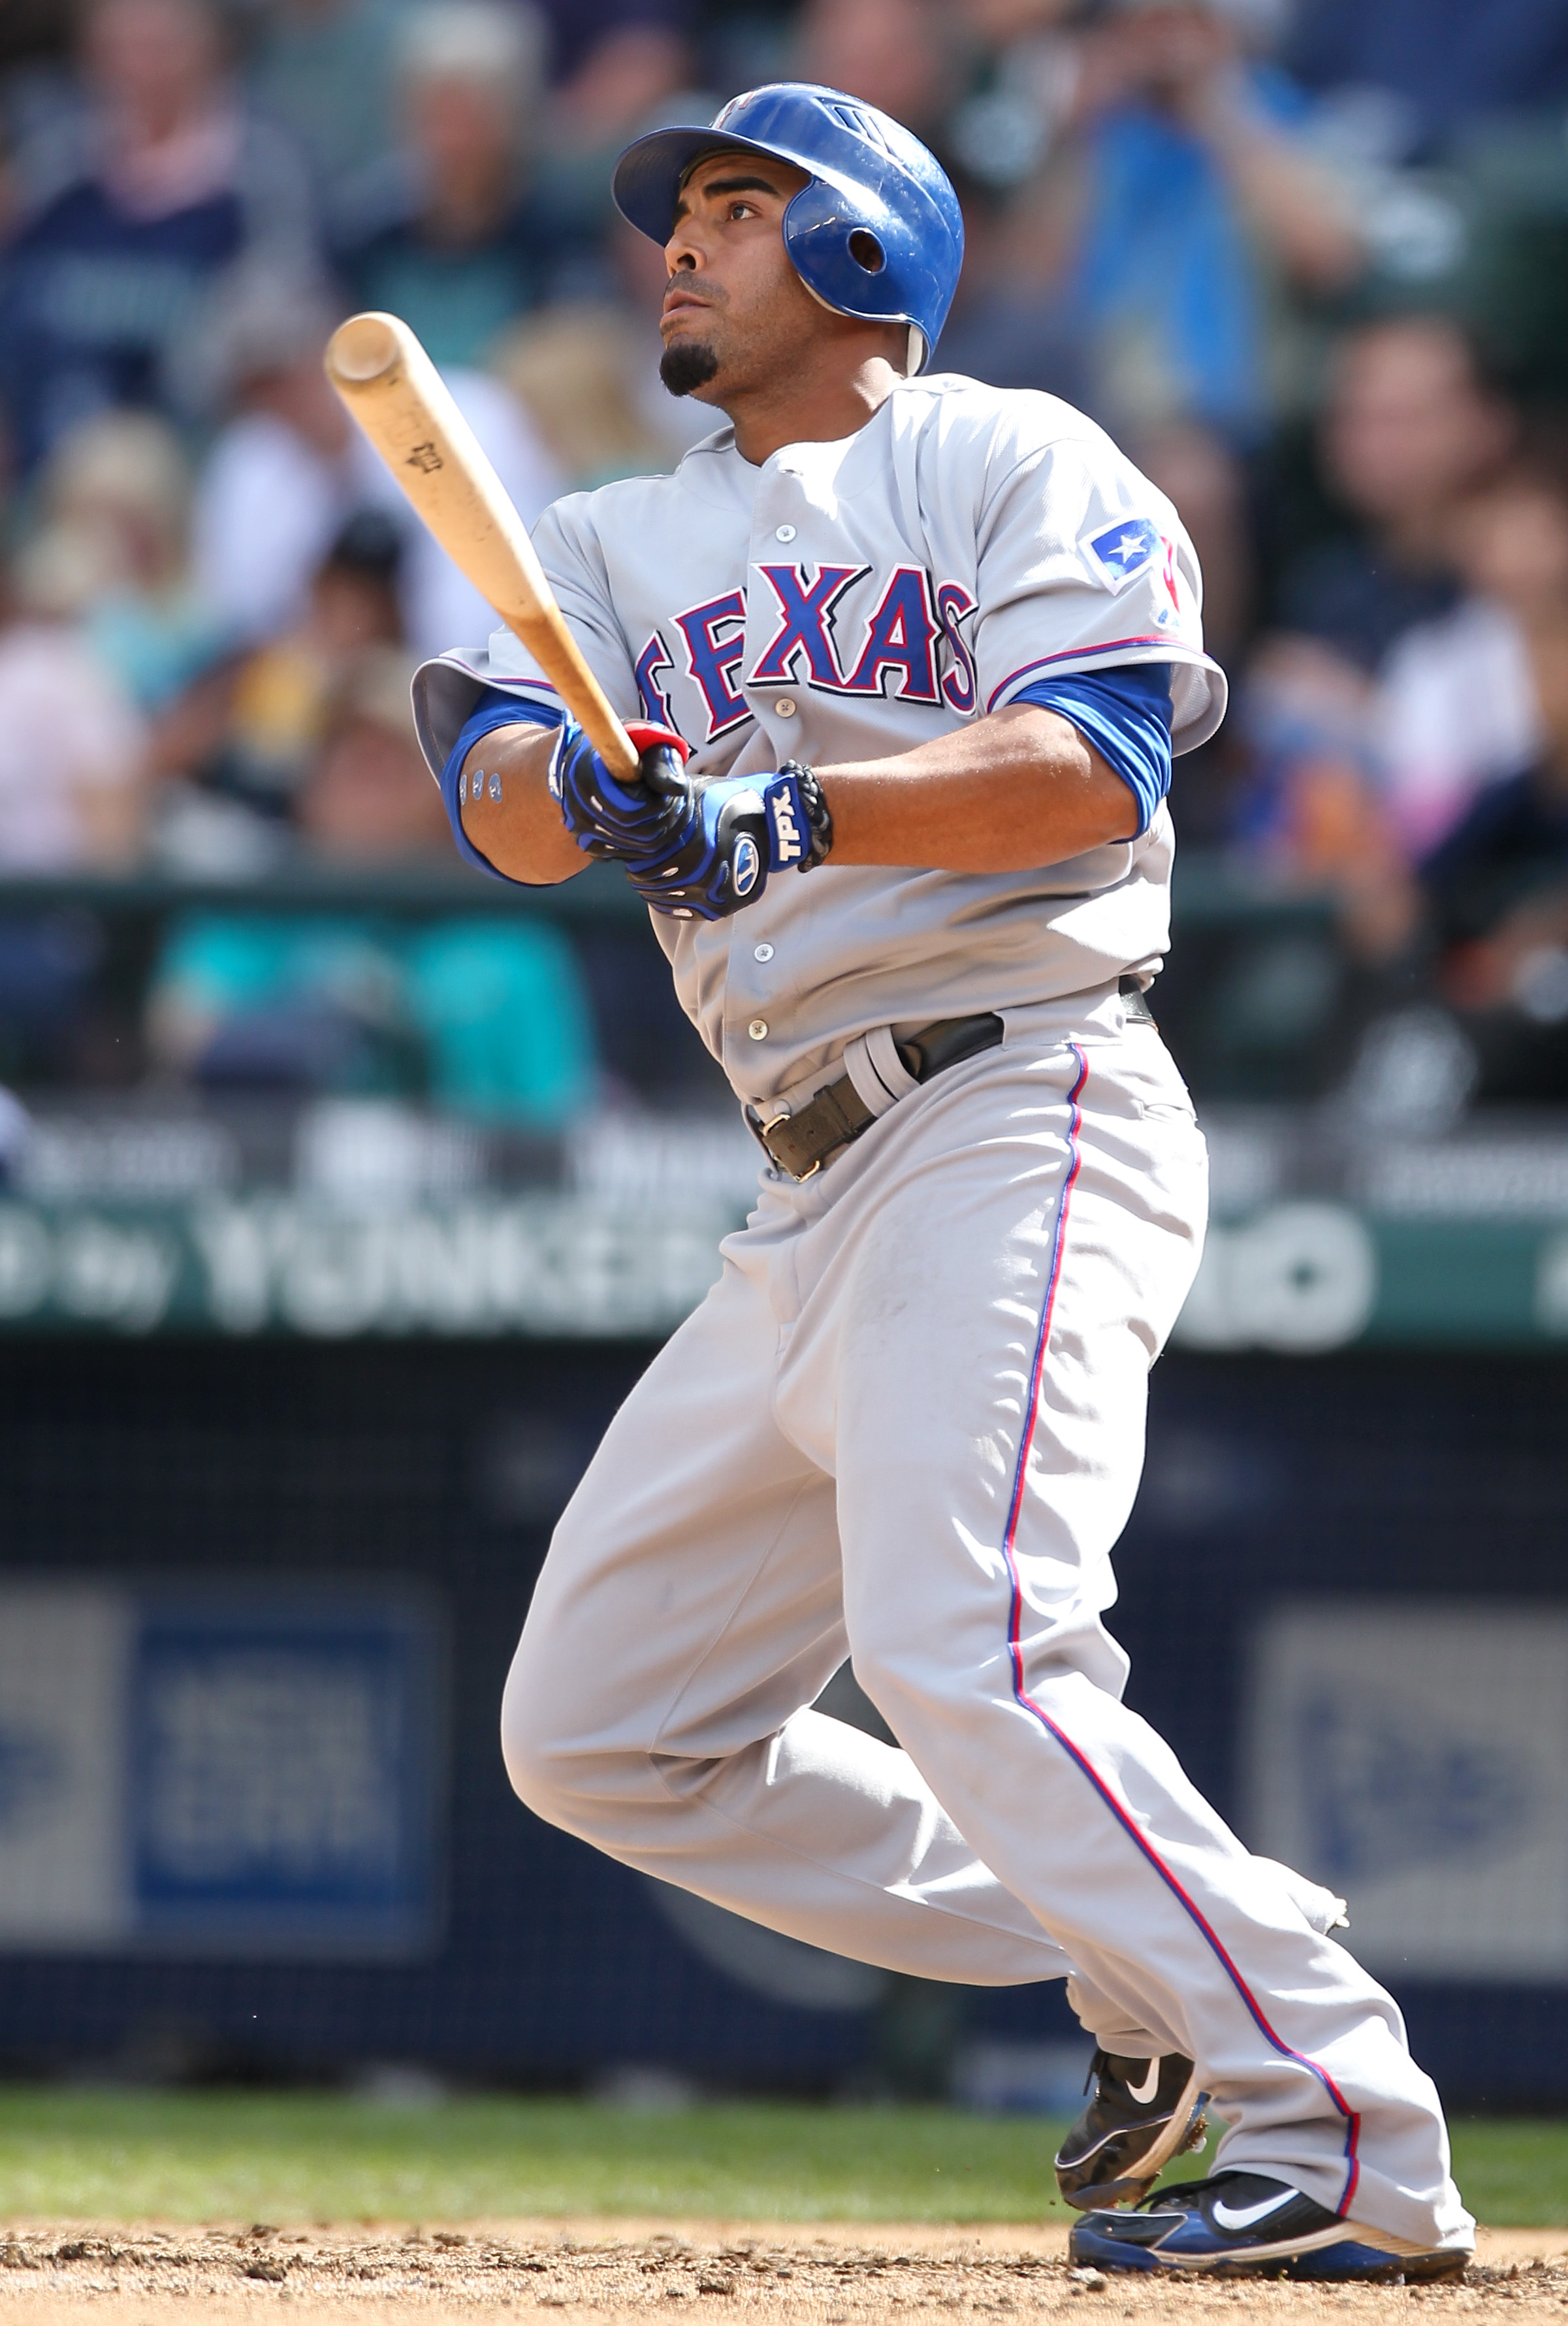 SEATTLE - SEPTEMBER 19:  Nelson Cruz #17 of the Texas Rangers watches the flight of his solo home run against the Seattle Mariners at Safeco Field on September 19, 2010 in Seattle, Washington. The Mariners defeated the Rangers 2-1. (Photo by Otto Greule J